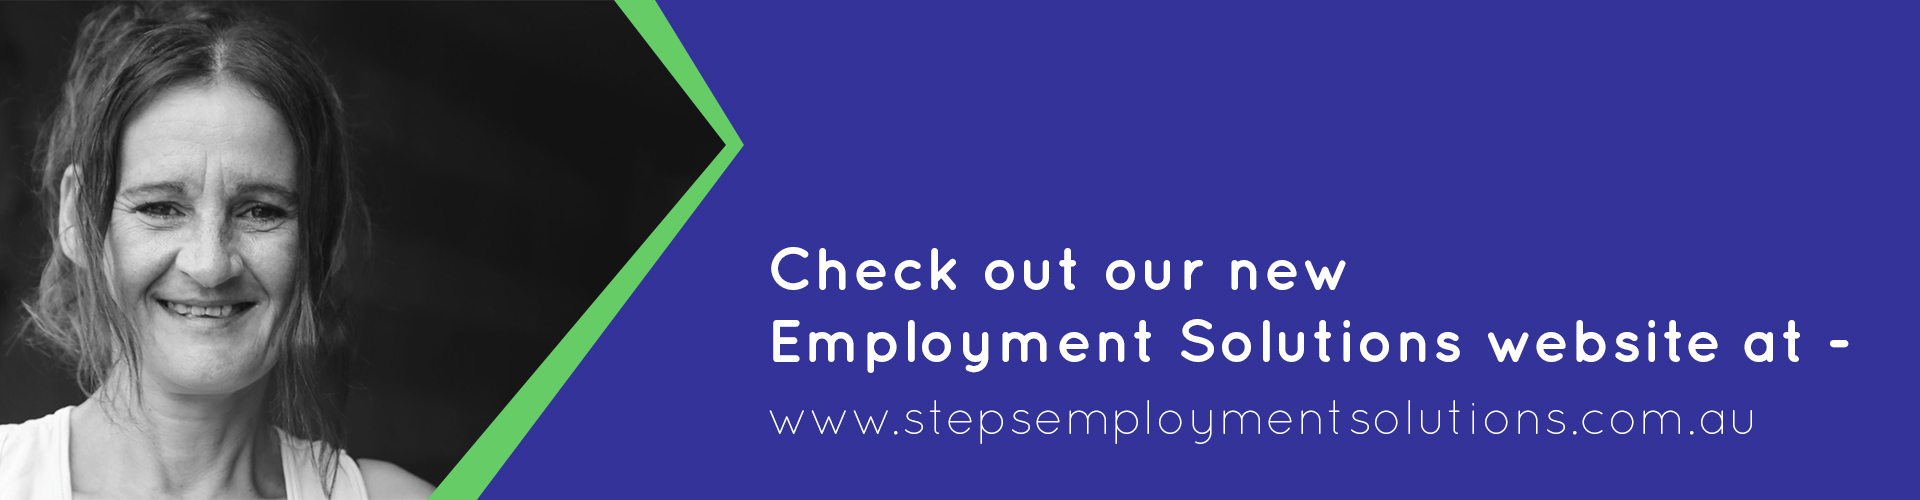 steps-employment-solutions-check-out-our-new-website